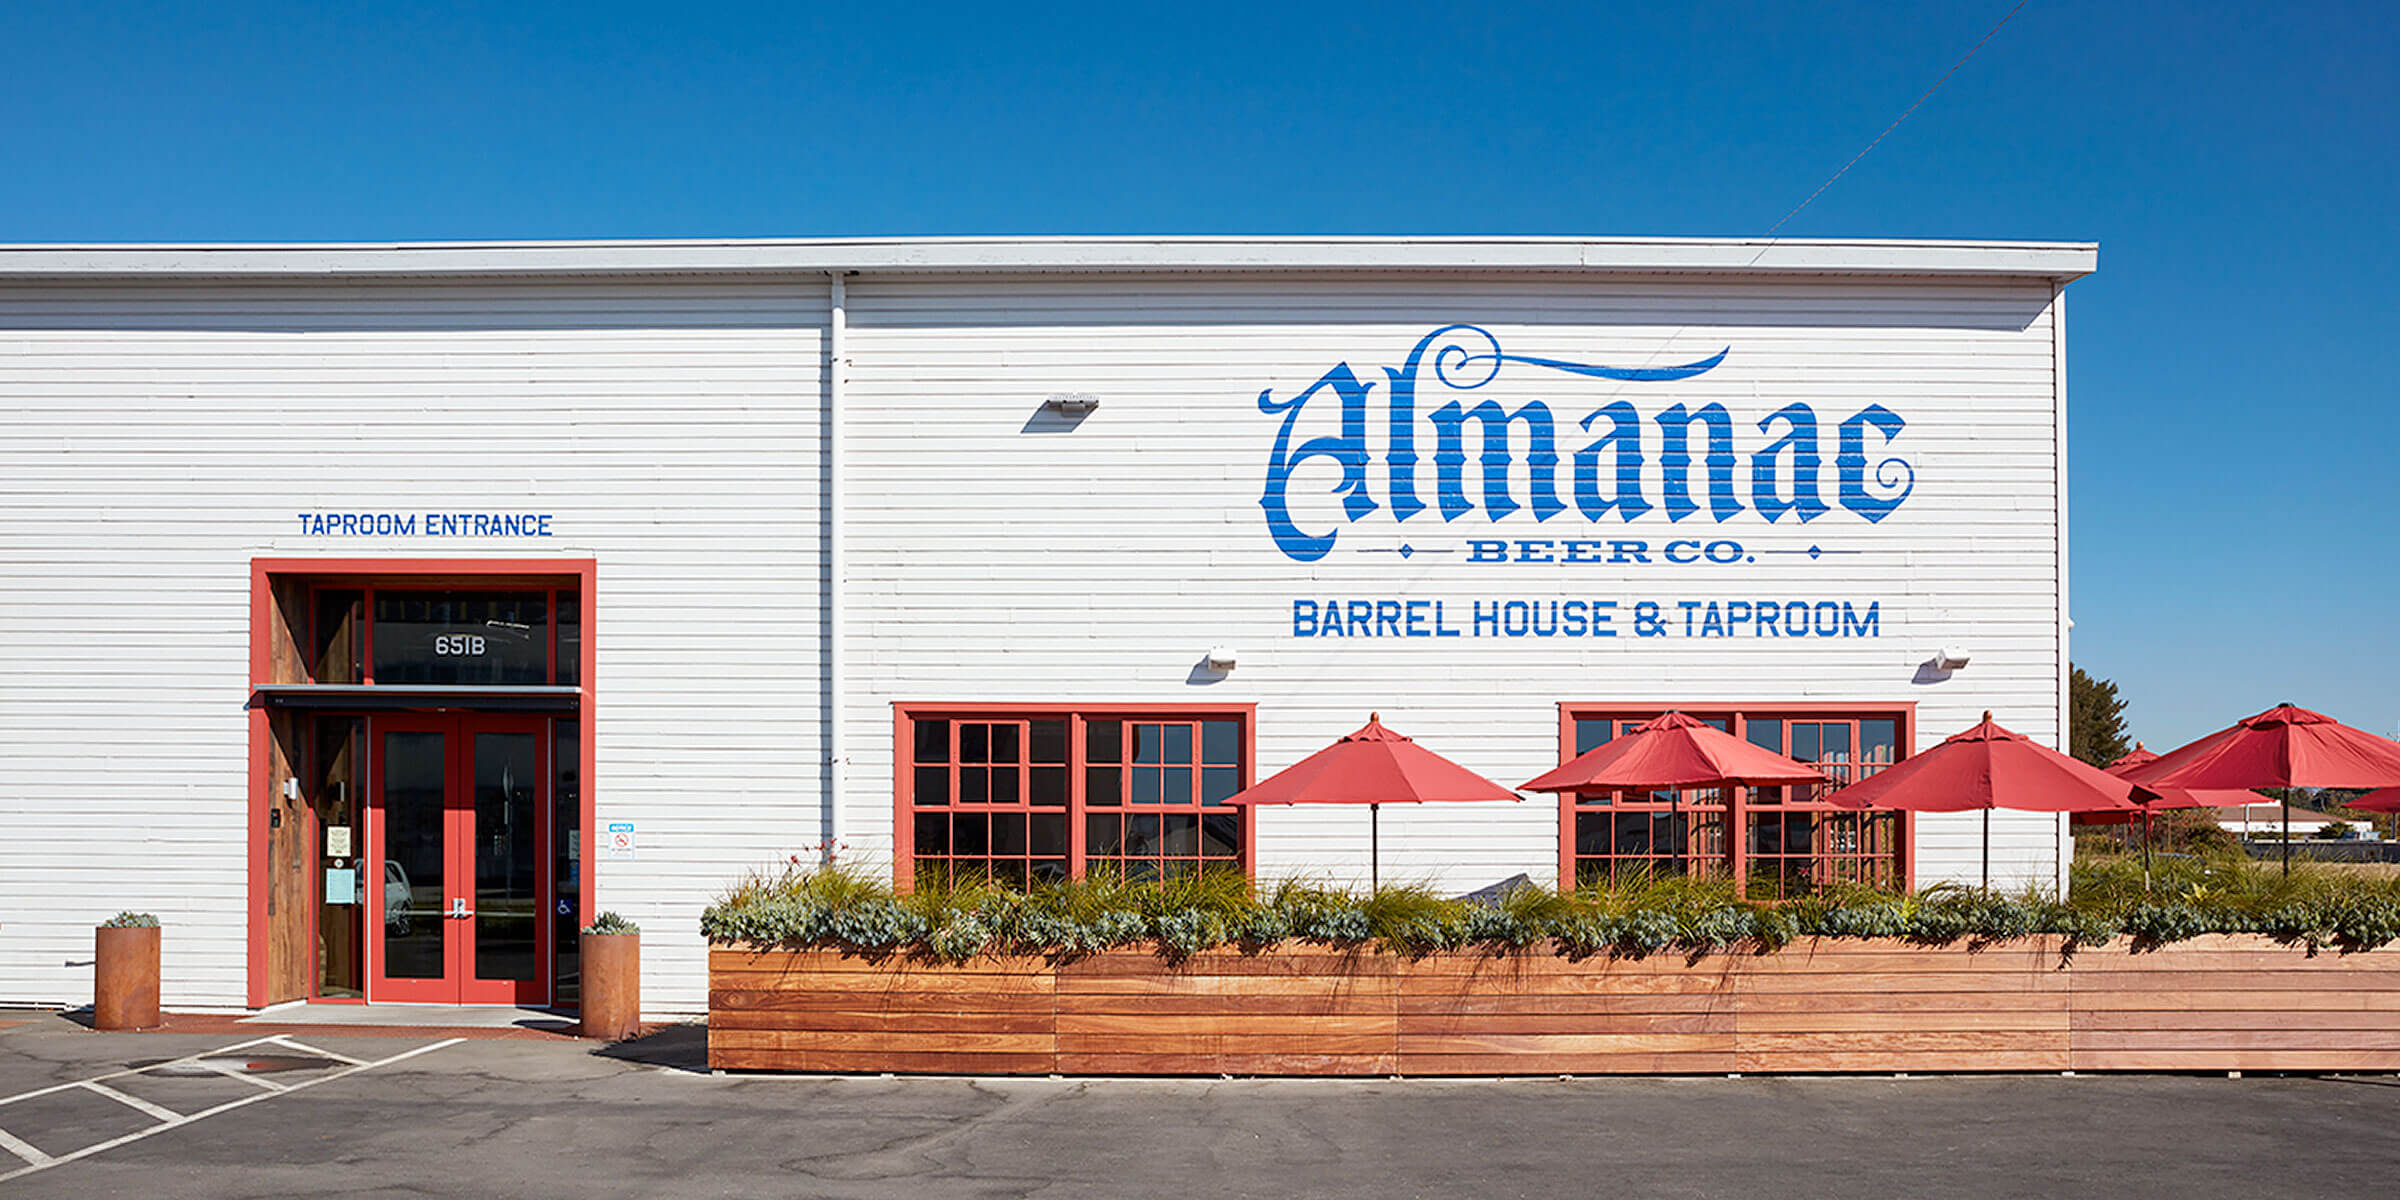 Outside the entrance to the taproom at Almanac Beer Co. in Alameda, California